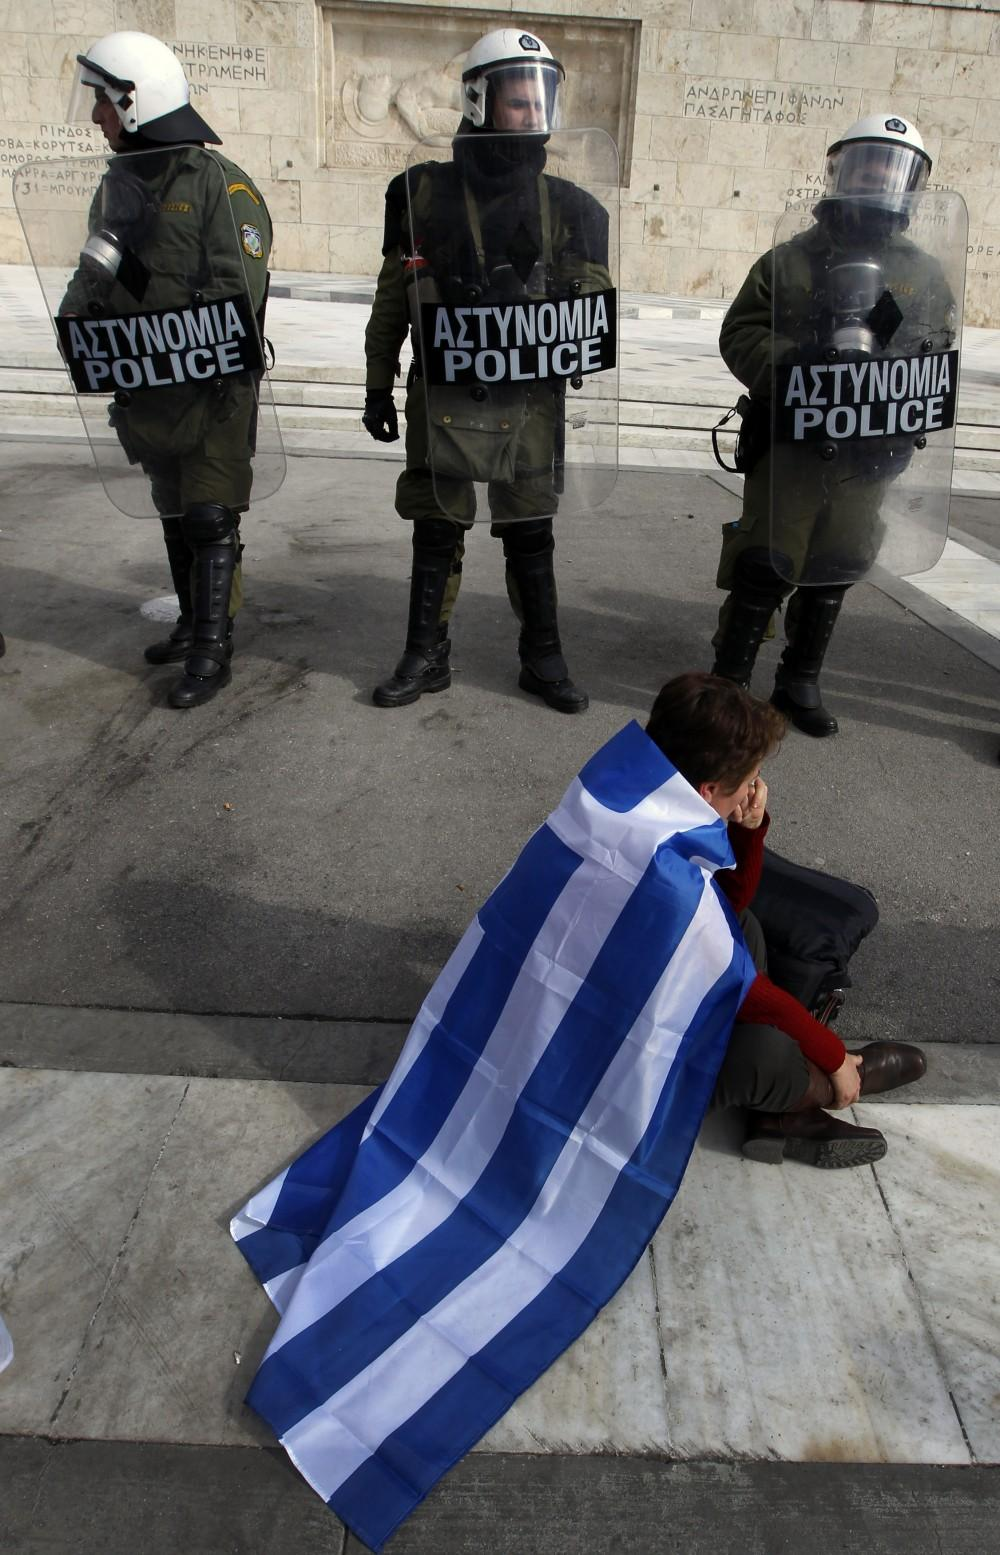 Greece: A demonstrator sits in front of officers guarding the country's parliament in Athens Saturday.